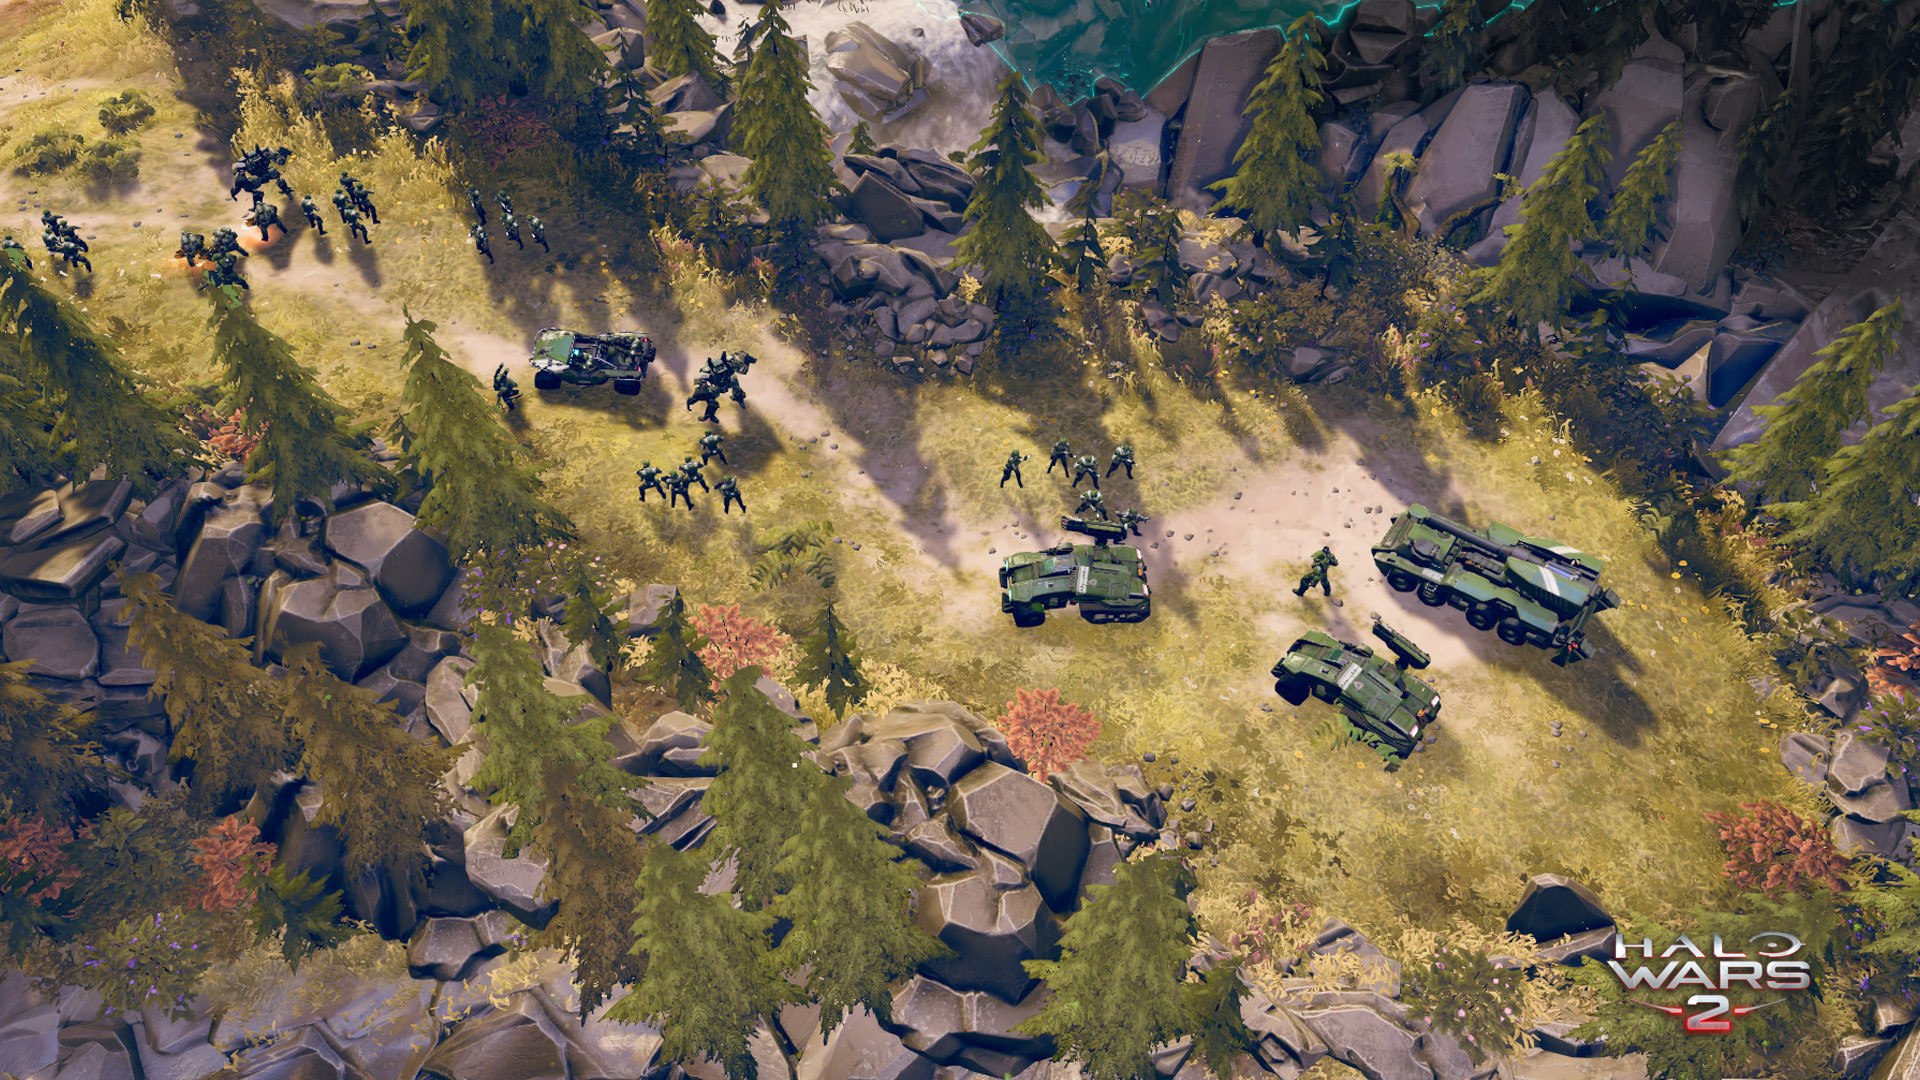 Photo of Halo Wars 2 To Support cross-play between PC and Xbox One